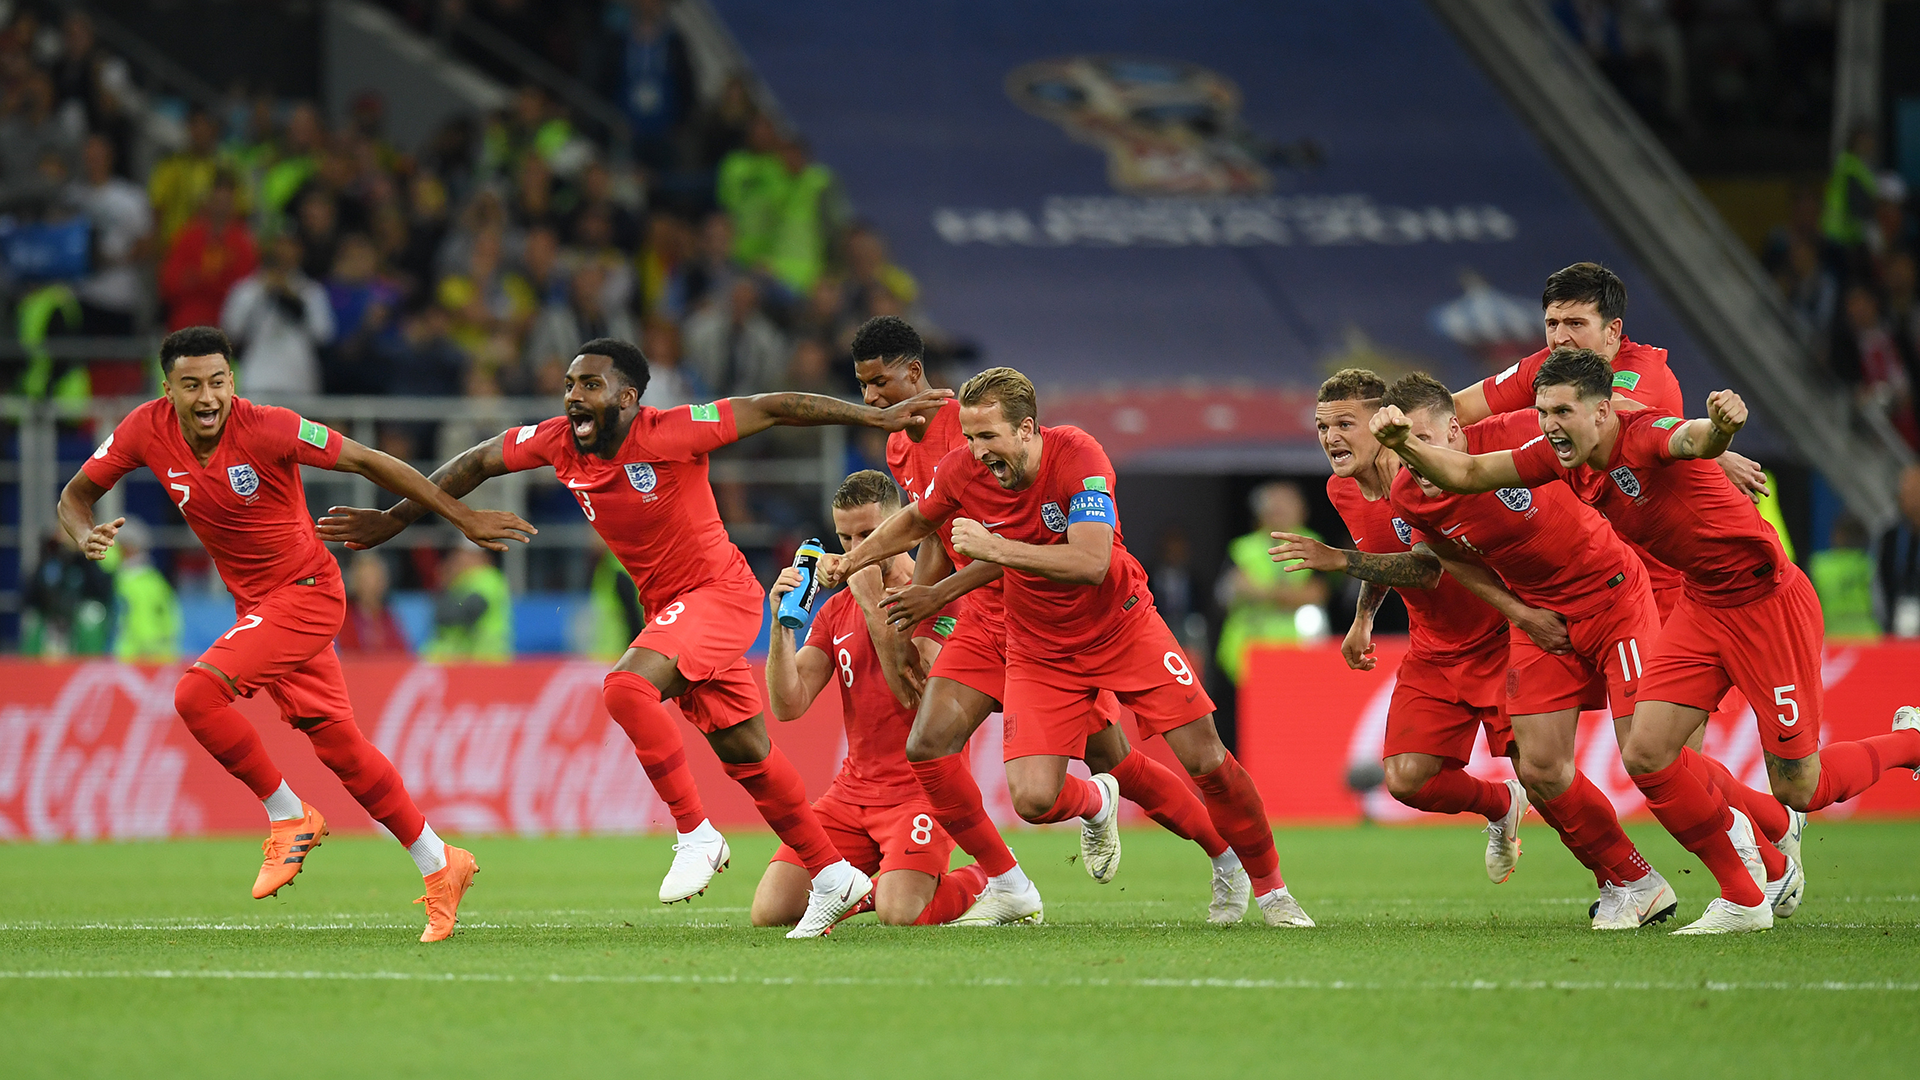 England Colombia World Cup 2018